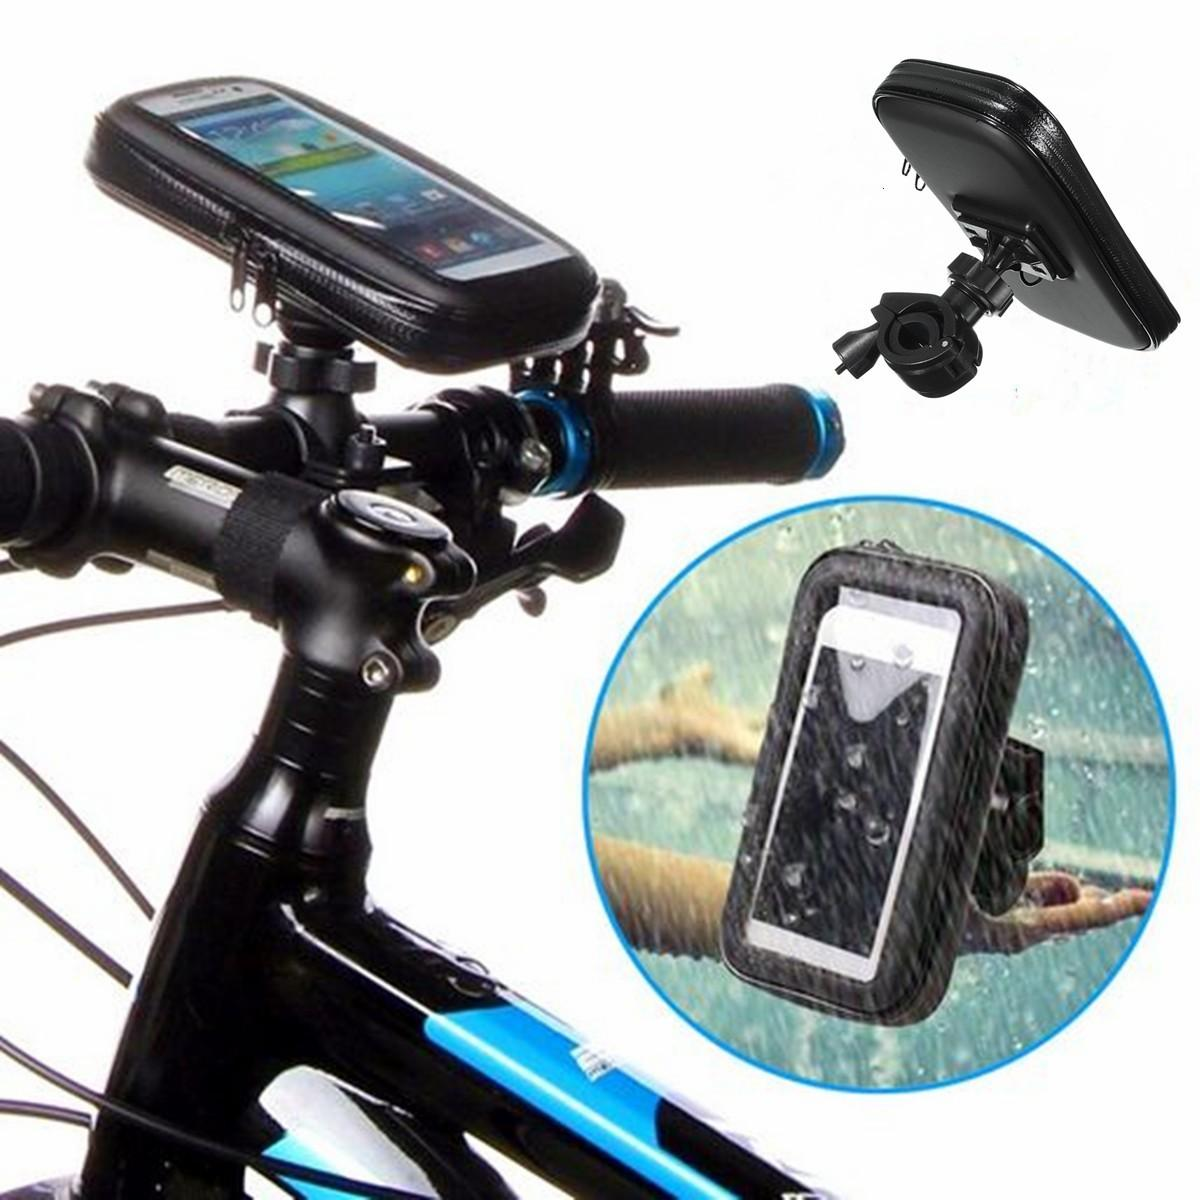 Bicycle Phone Mount >> Universal Waterproof Motor Bike Motorcycle Case Bike Bag Phone Mount Holder For Iphone Samsung Gps